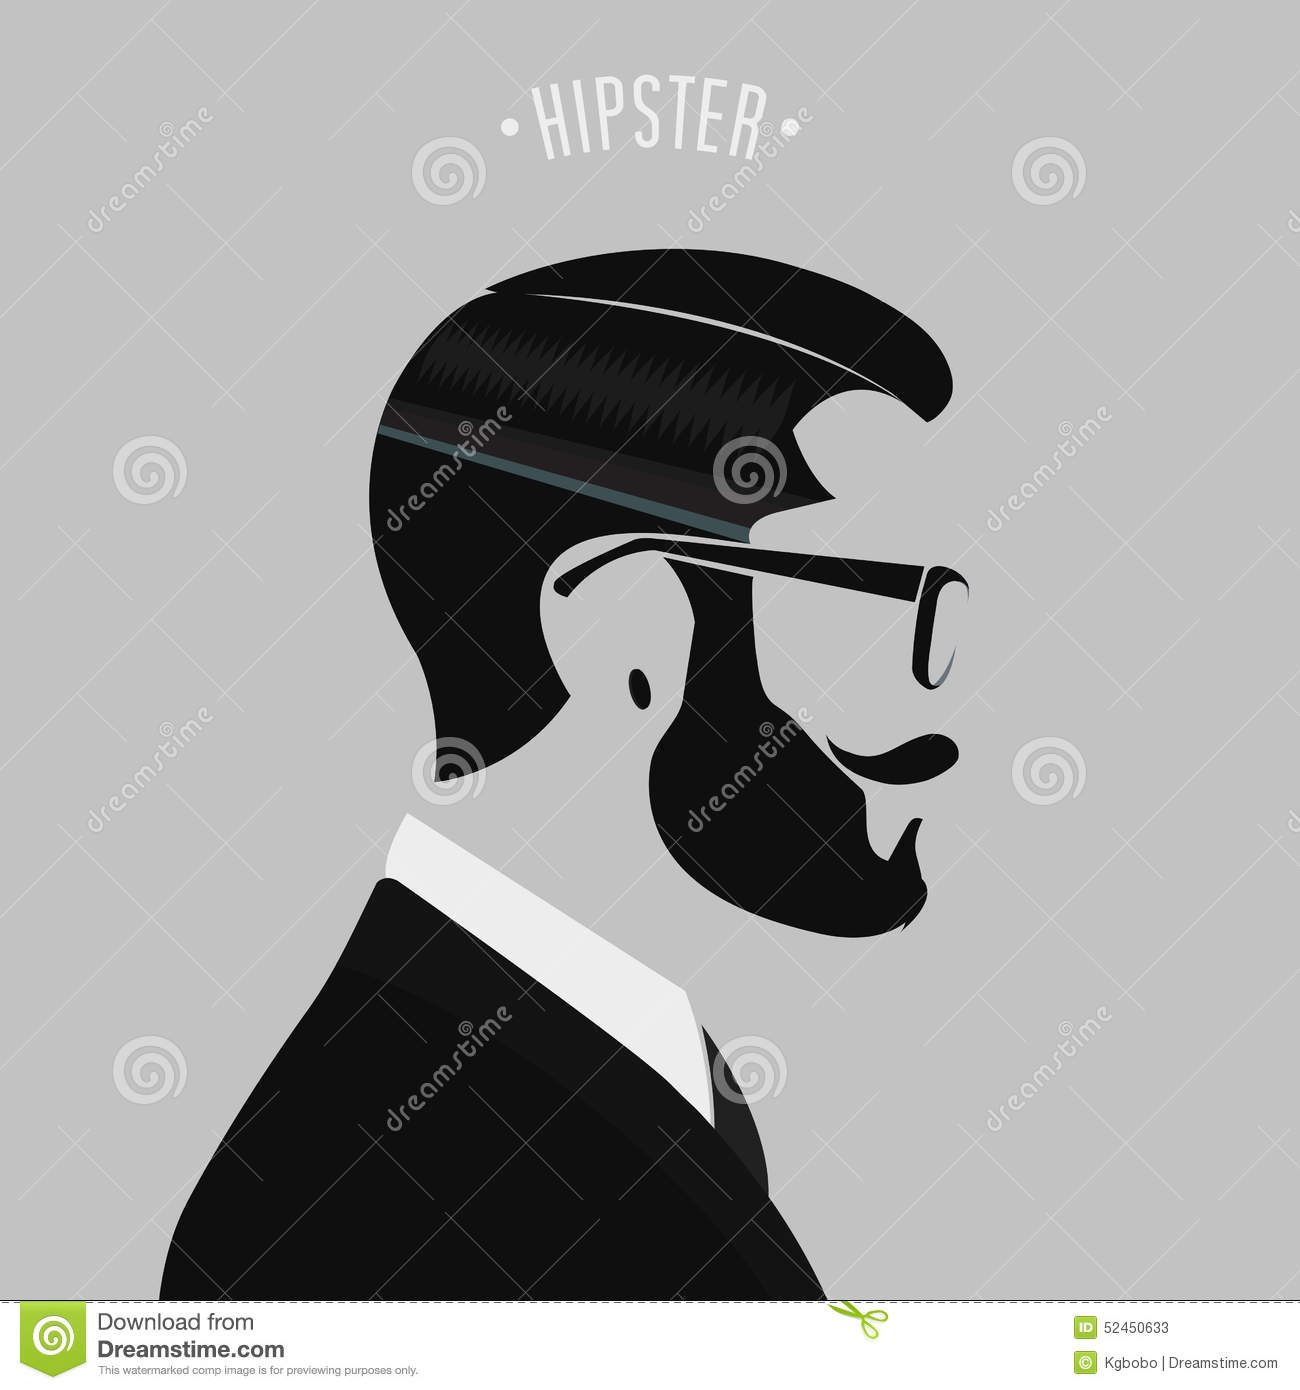 Hipster Men Fashion Stock Vector Image 52450633